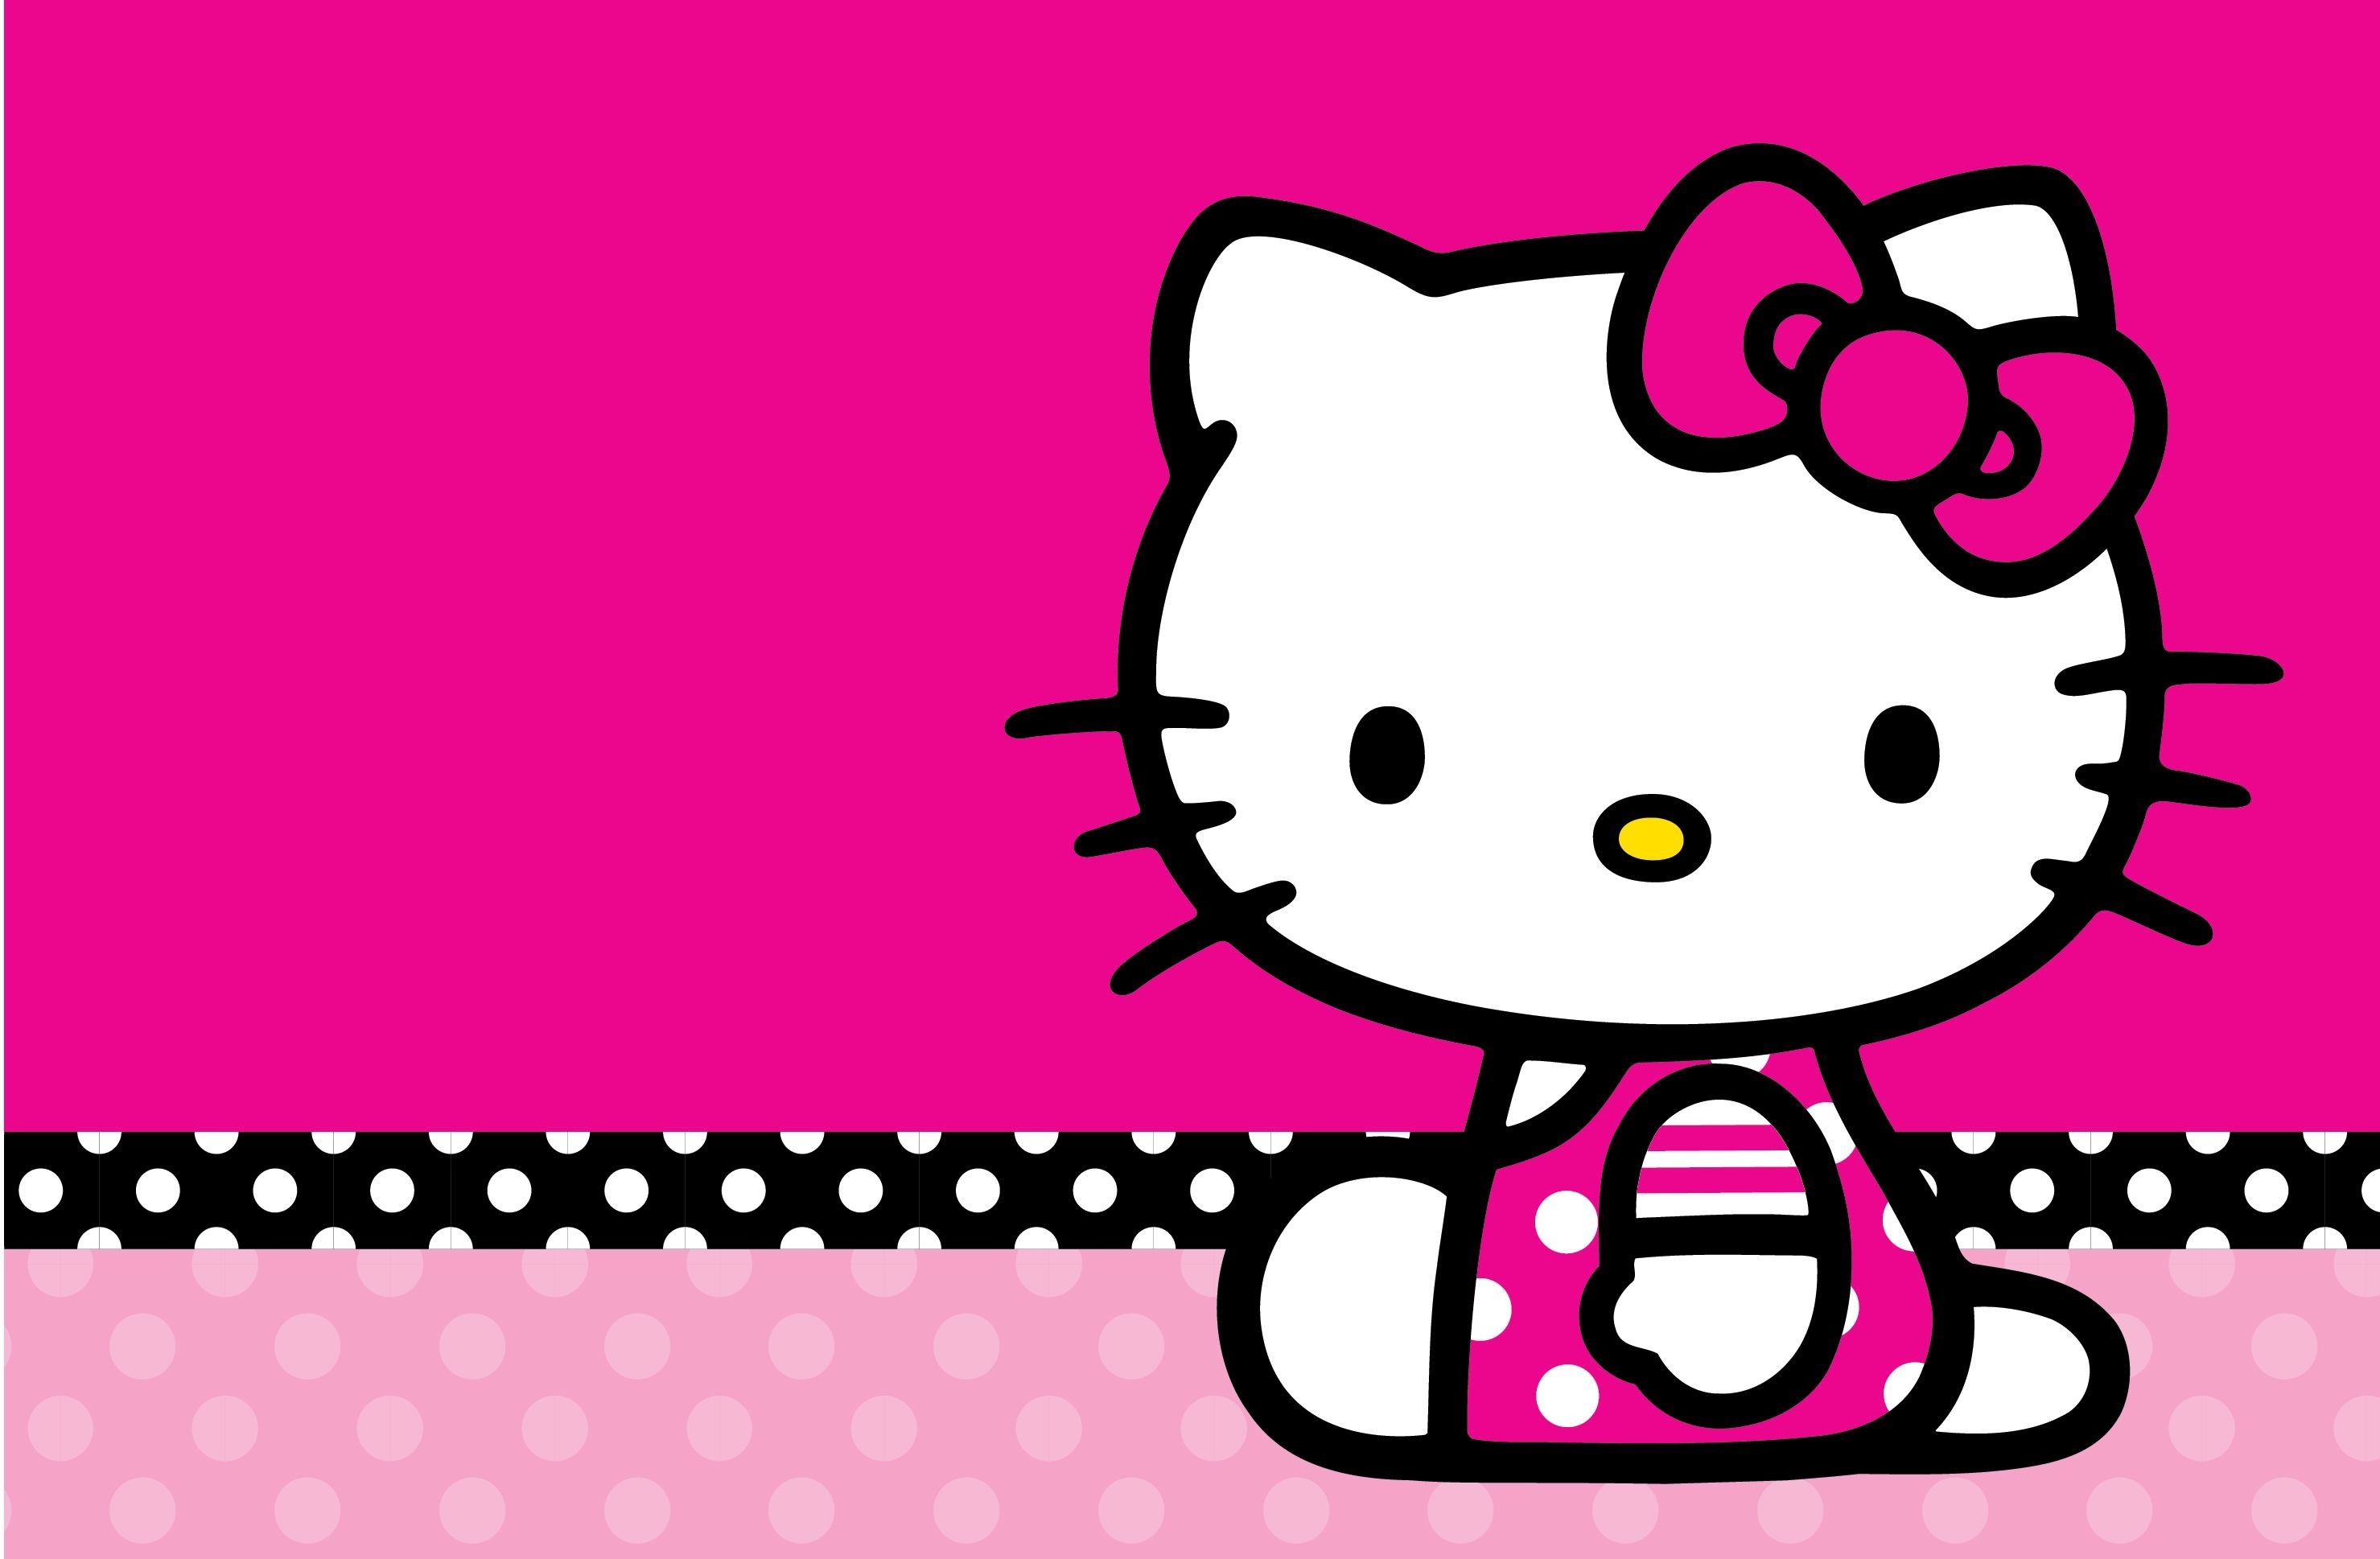 Top Wallpaper Hello Kitty Note 3 - 913250-top-hello-kitty-black-and-pink-wallpaper-2958x1938  You Should Have_991665.jpg